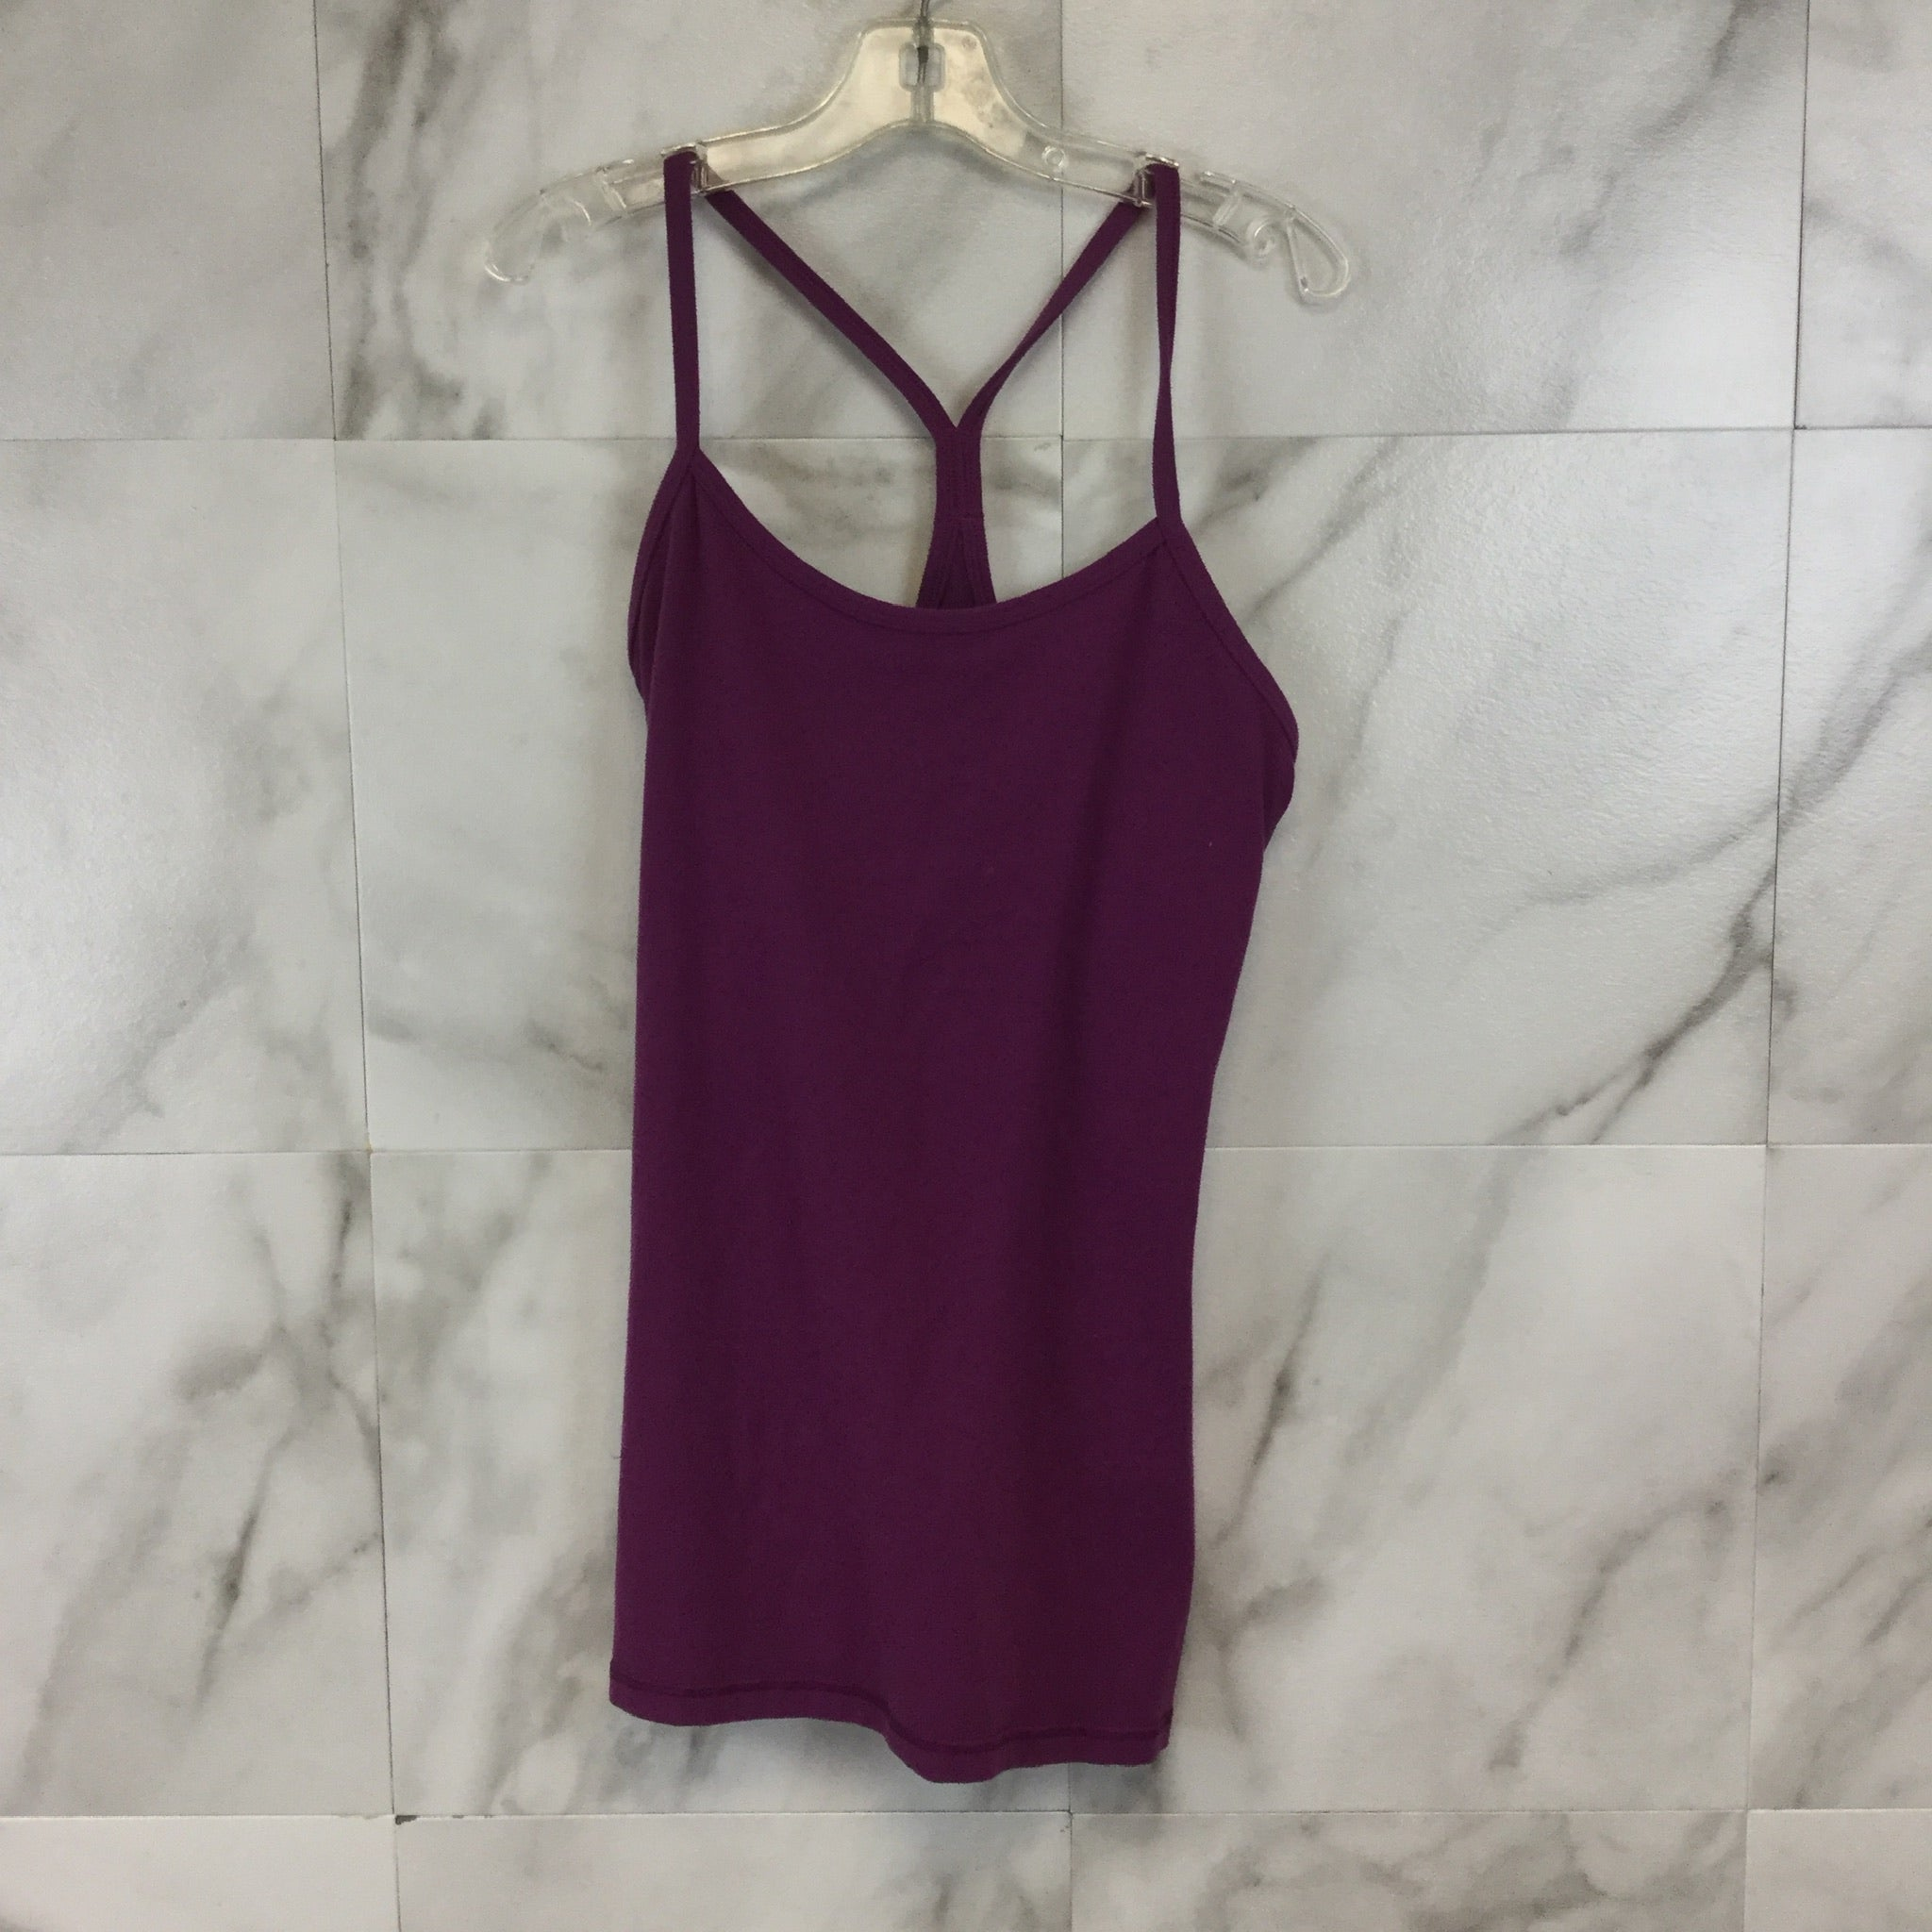 Lululemon Power Y Tank - Size S